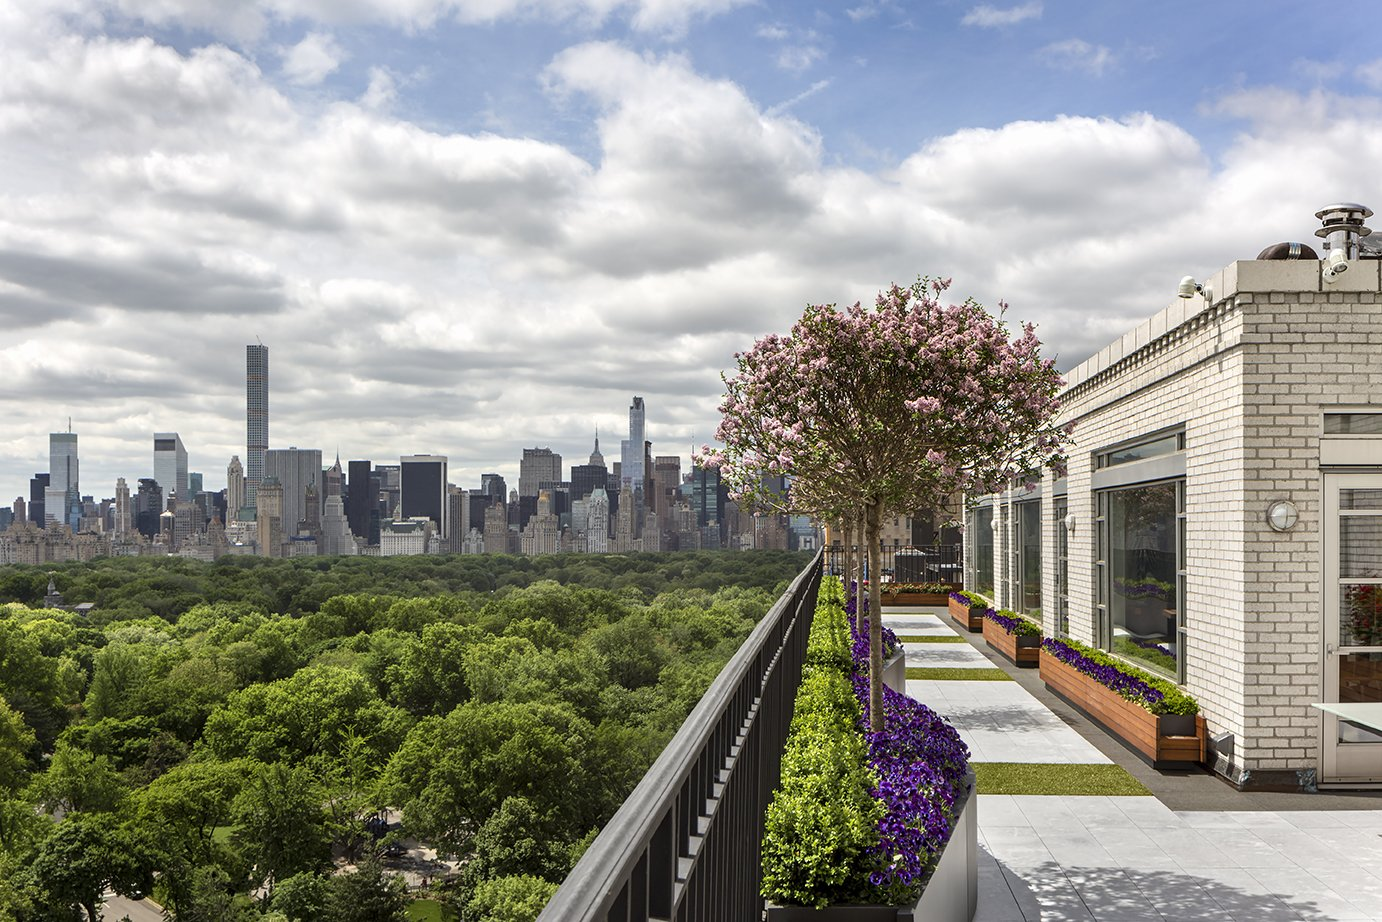 Mojo Stumer Associates Architects and landscape architects Town & Gardens partnered to rejuventate an overlooked outdoor area at a Manhattan penthouse. Their objective was to elevate the terrace to match the inviting, modern interiors.  outdoors by Laura McLaughlin from A Renovated Penthouse Garden Has an Unbelievable View of New York City